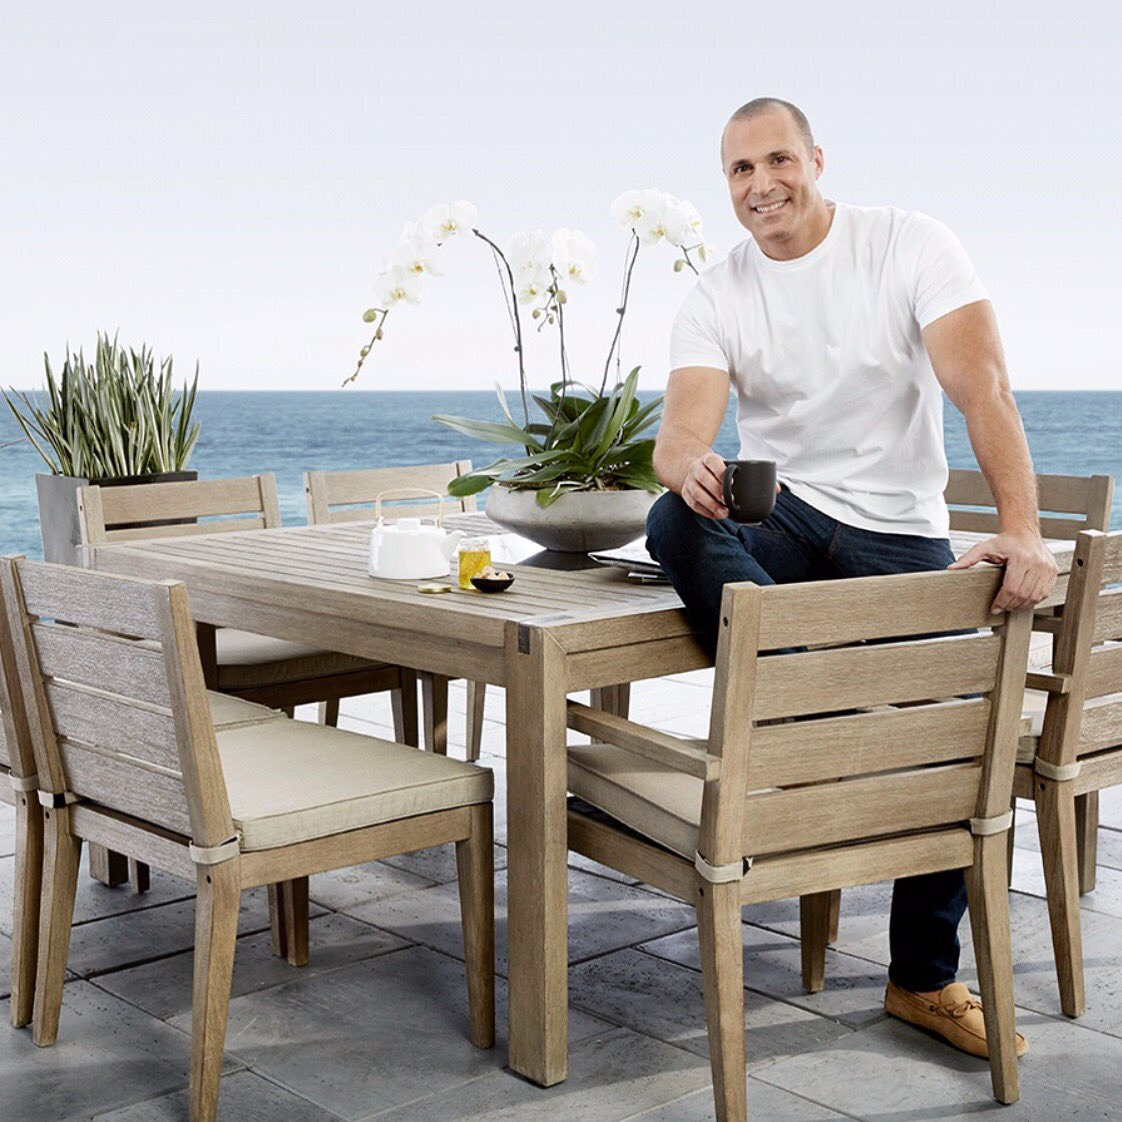 Nigel Barker On Twitter Sun S Out Get Your Nb2 Artvan Outdoor Furniture Out Check Out My Whole Home Collection Here Https T Co 2ydlrzyjgs Https T Co 5s2xgnsszl